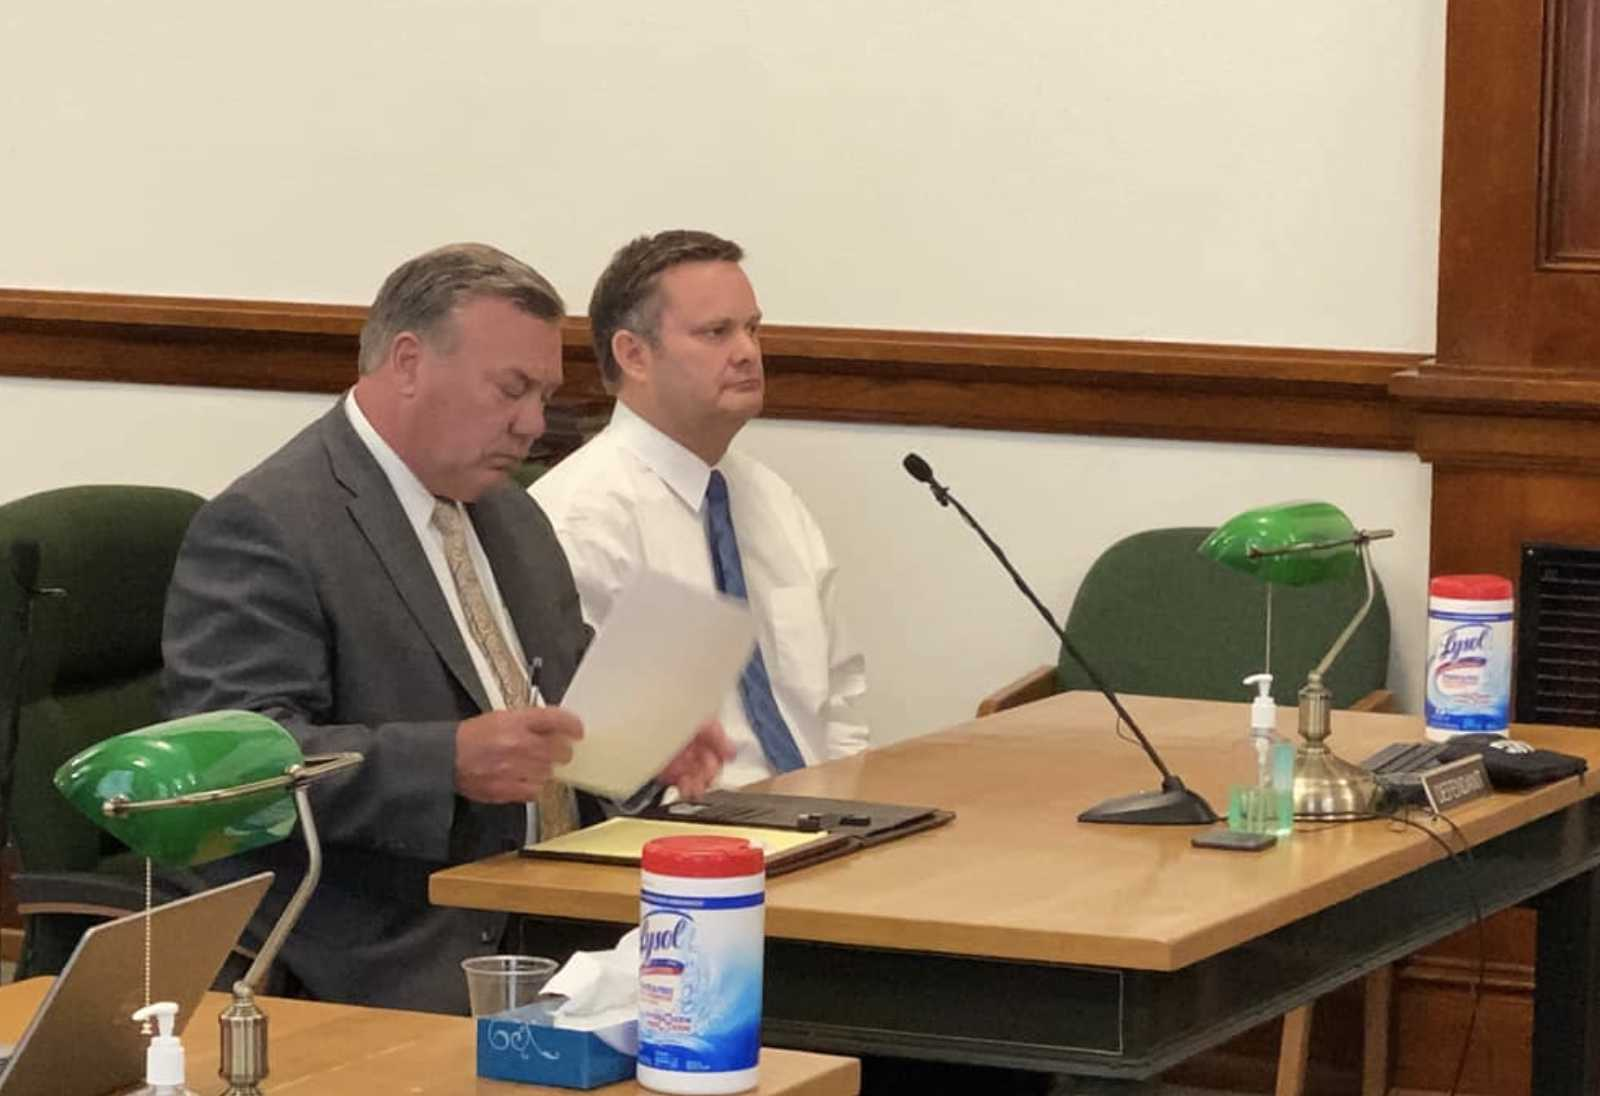 Chad Daybell hearing